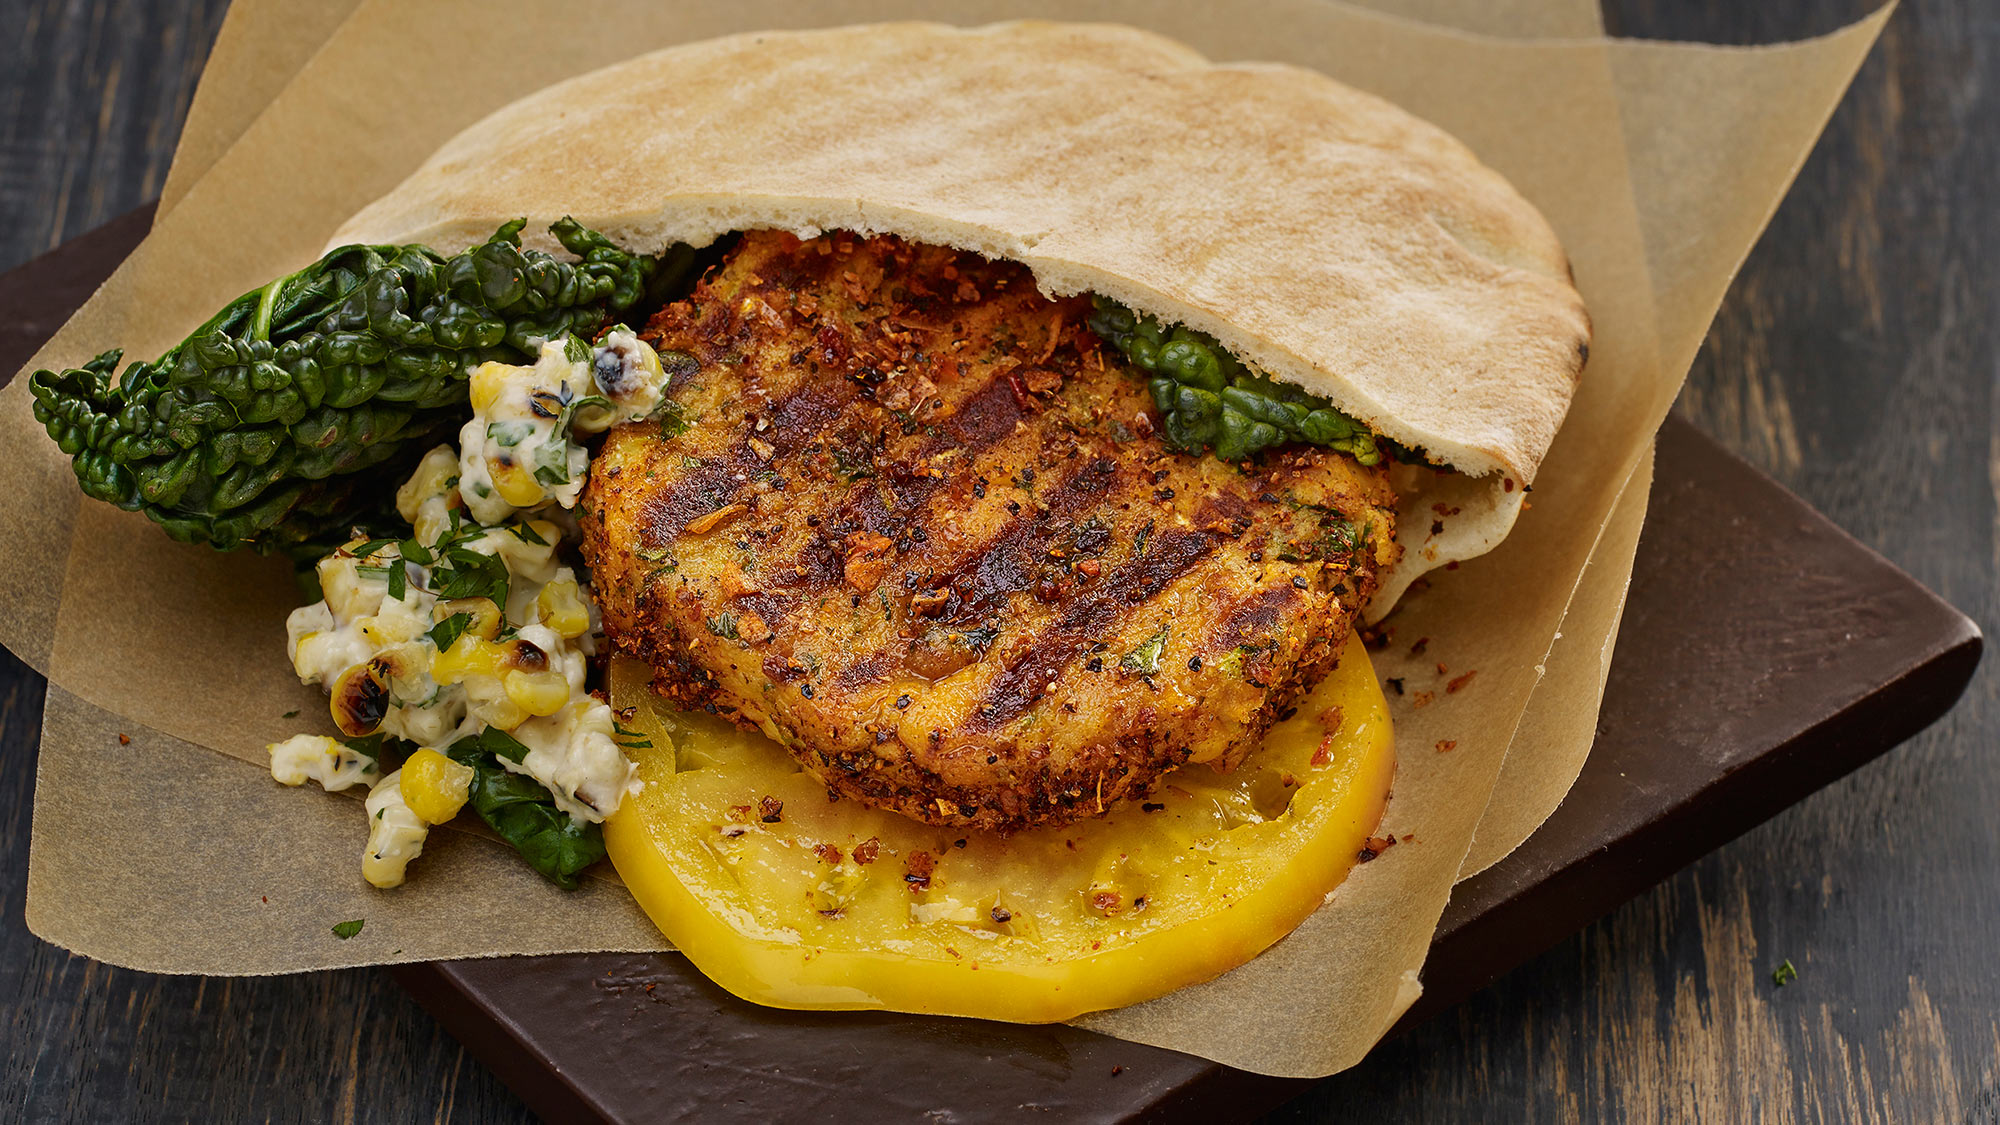 mesquite-chickpea-burger-with-grilled-corn-topping.jpg